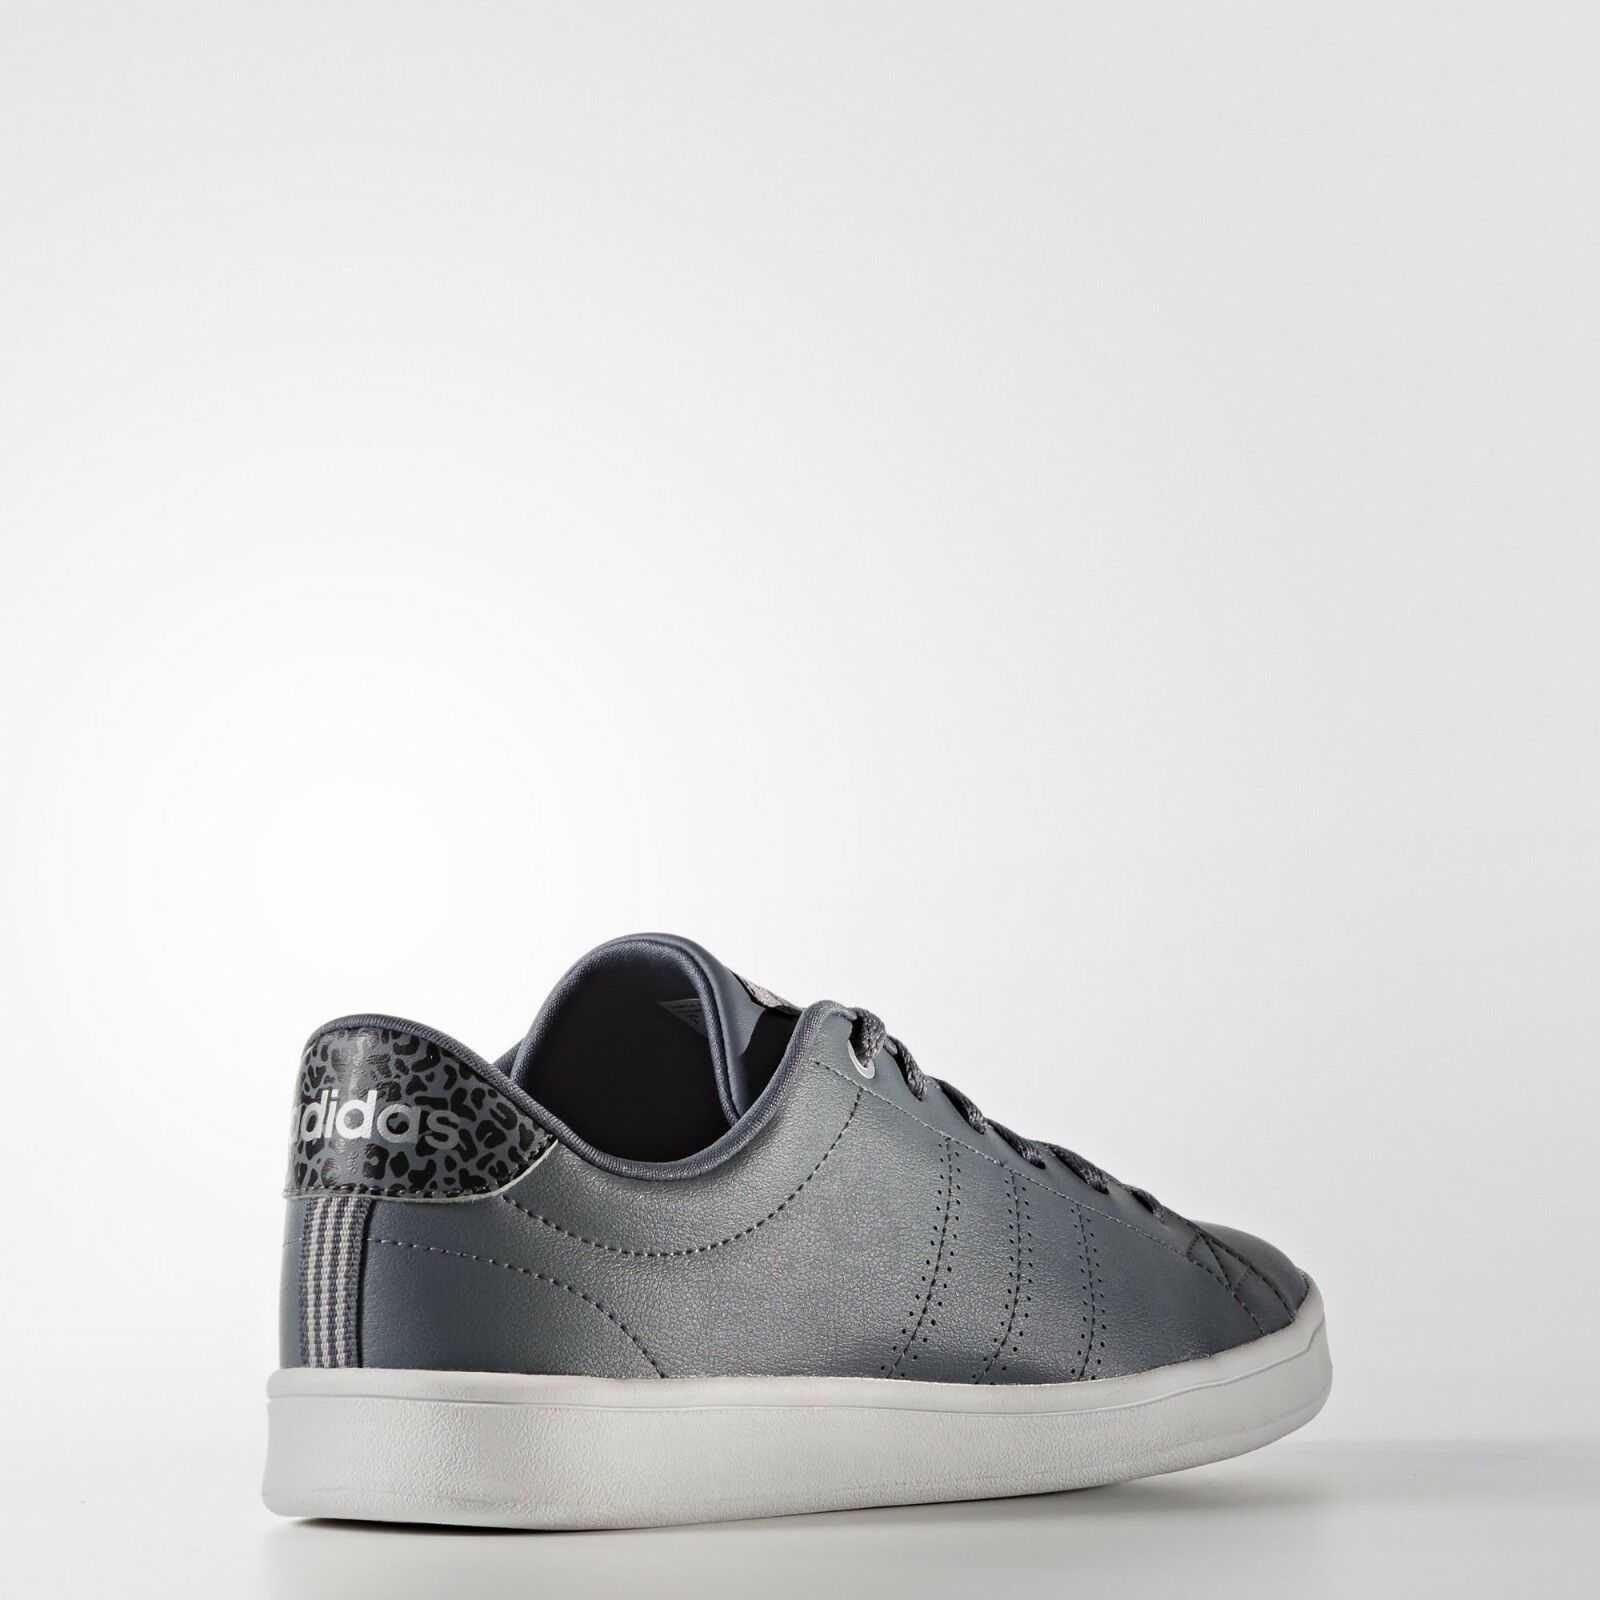 Adidas Neo Gray Originals STAN SMITH Superstar Womens